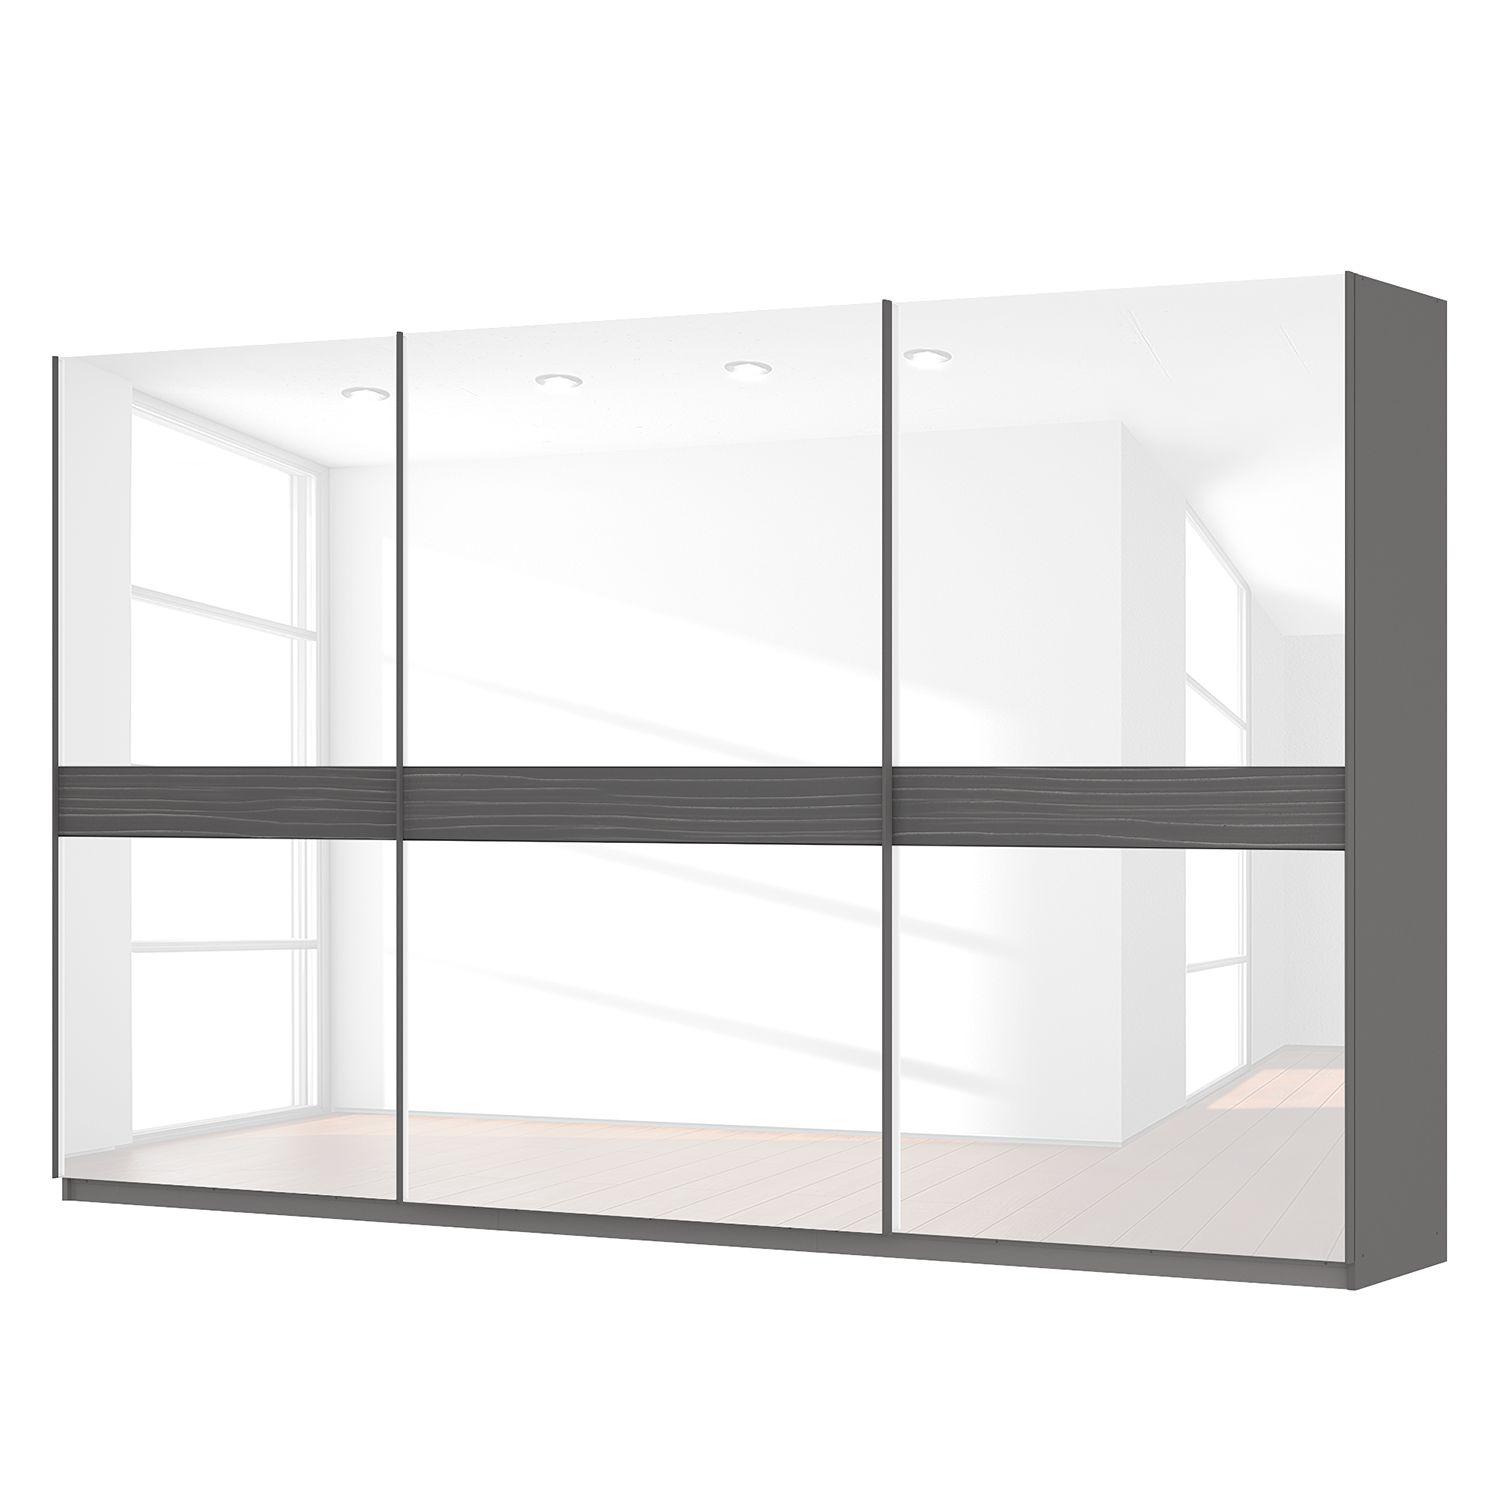 schwebet renschrank sk p graphit glas wei 360 cm 3 t rig 222 cm classic online kaufen. Black Bedroom Furniture Sets. Home Design Ideas